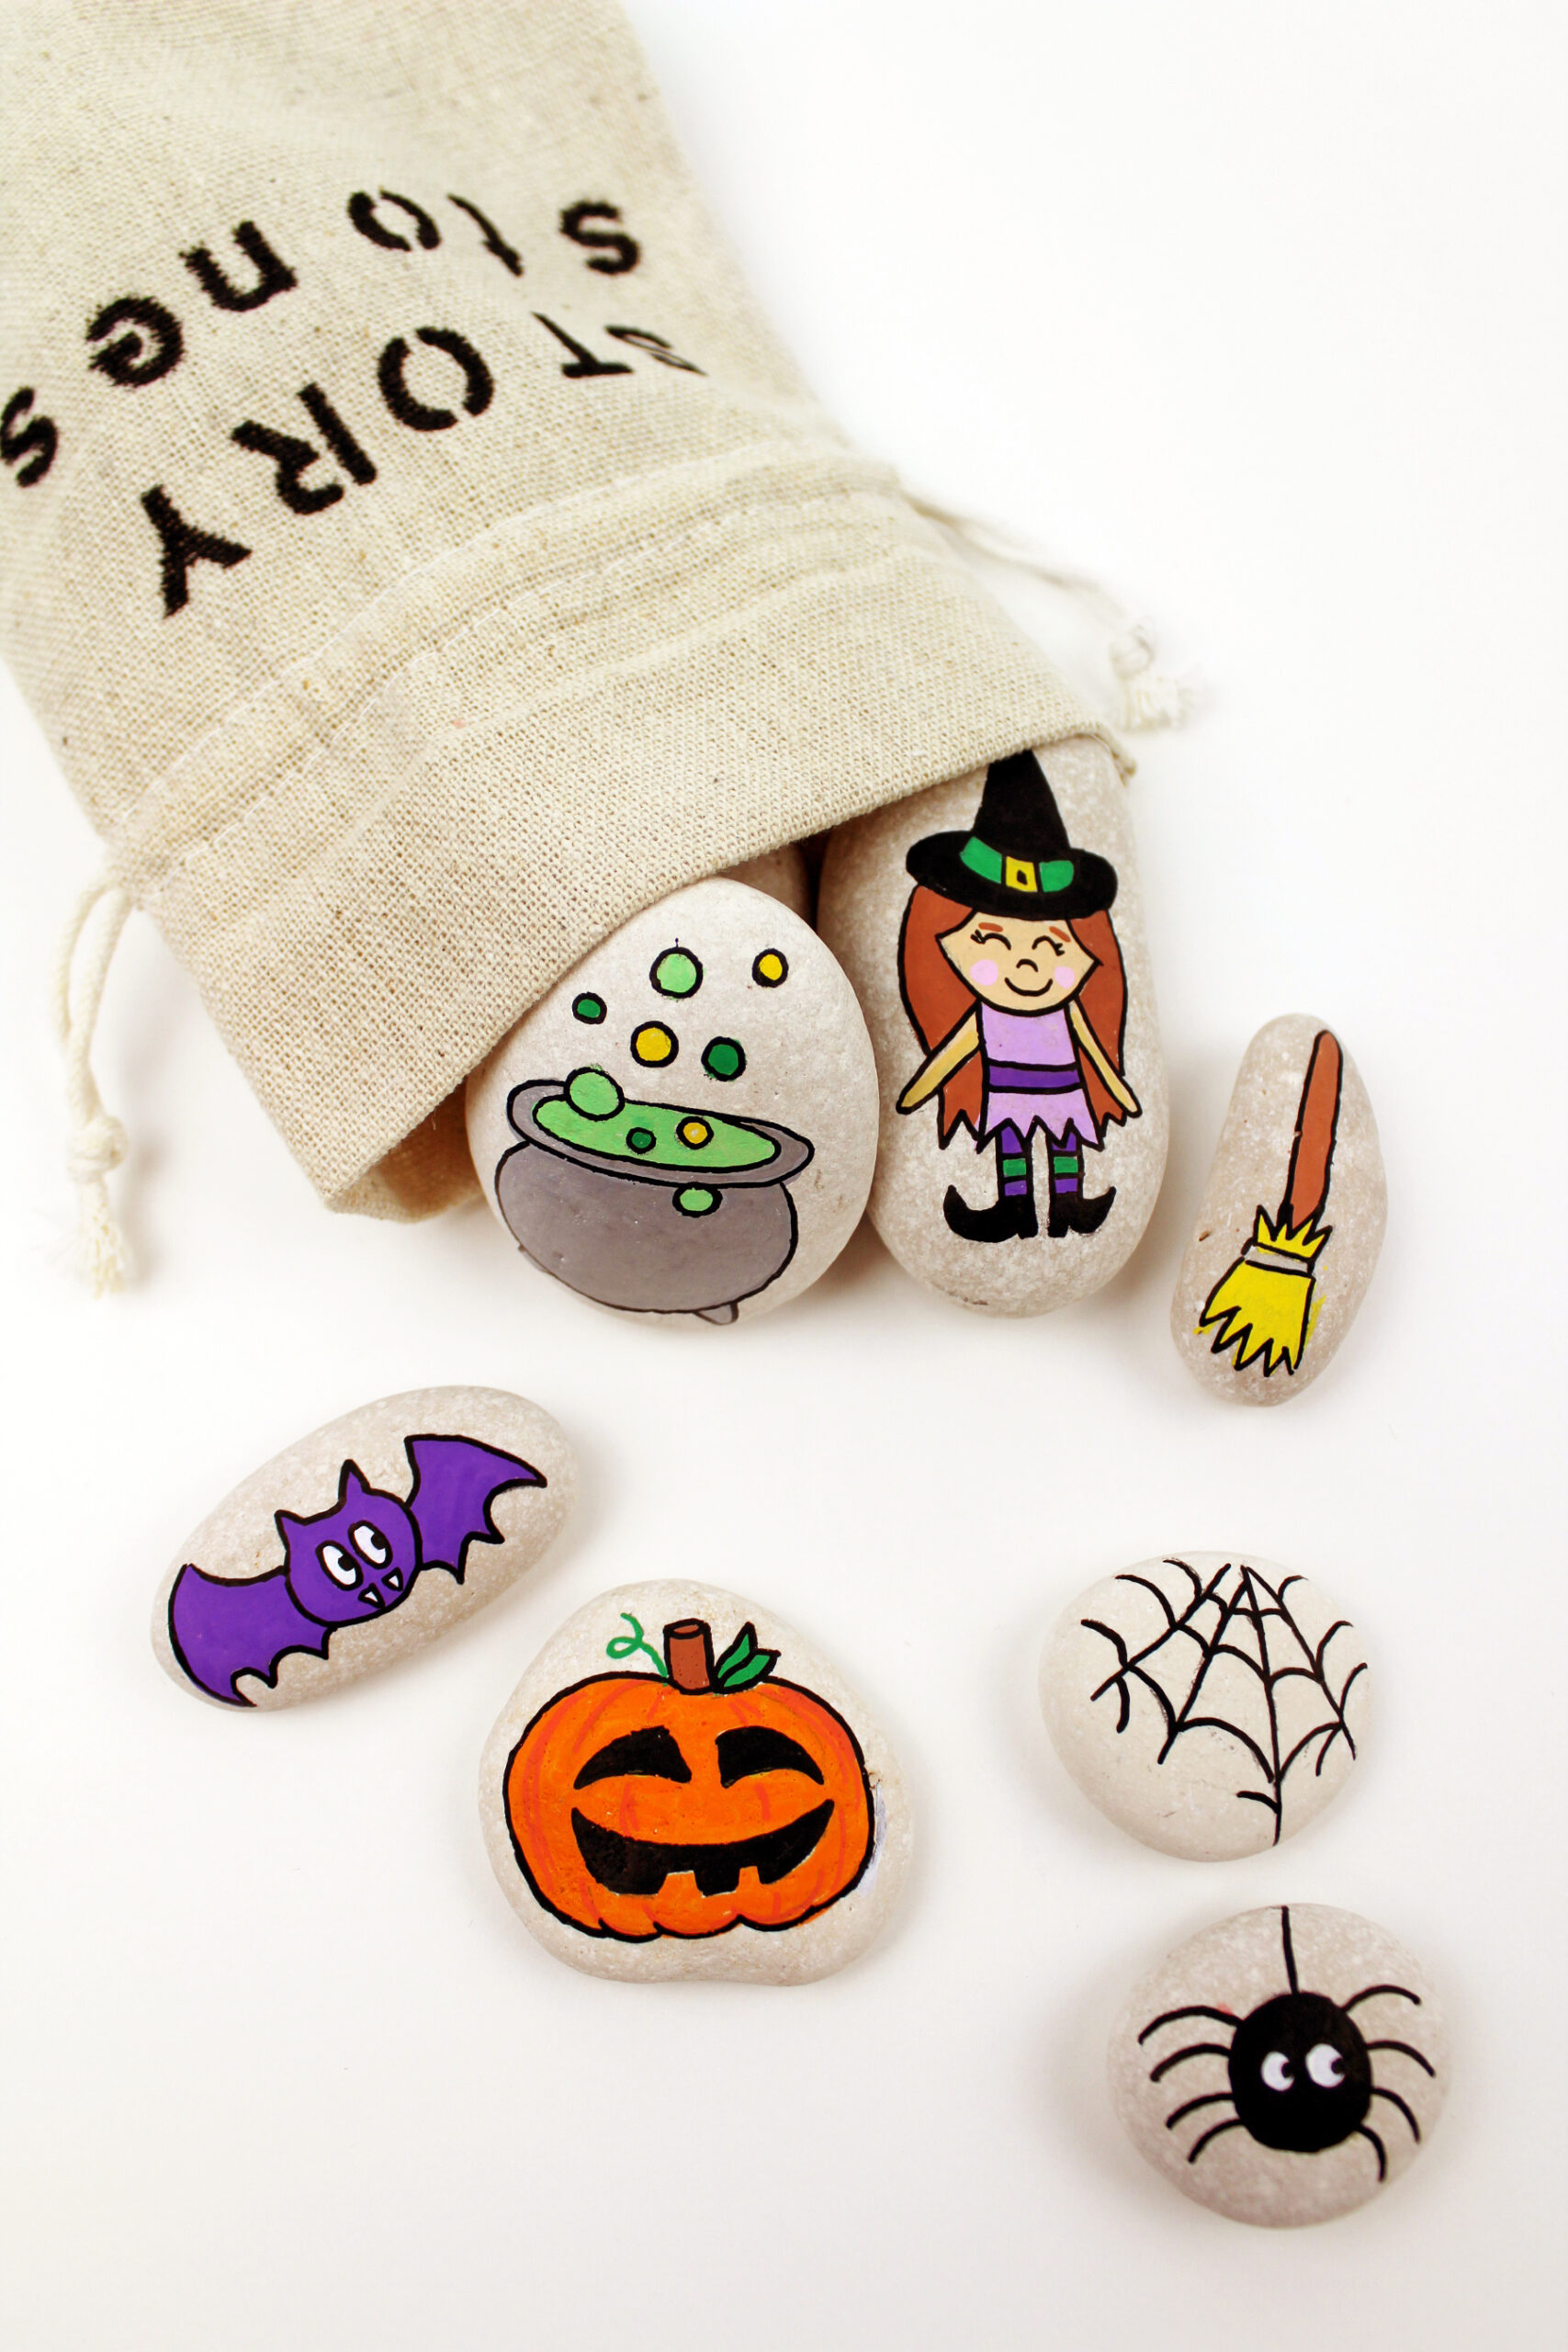 Get crafty this October and create something special with one of these 7 easy Halloween crafts and hands-on activities for toddlers and young kids! | @glitterinclexi | GLITTERINC.COM // Make Your Own Halloween Story Stones